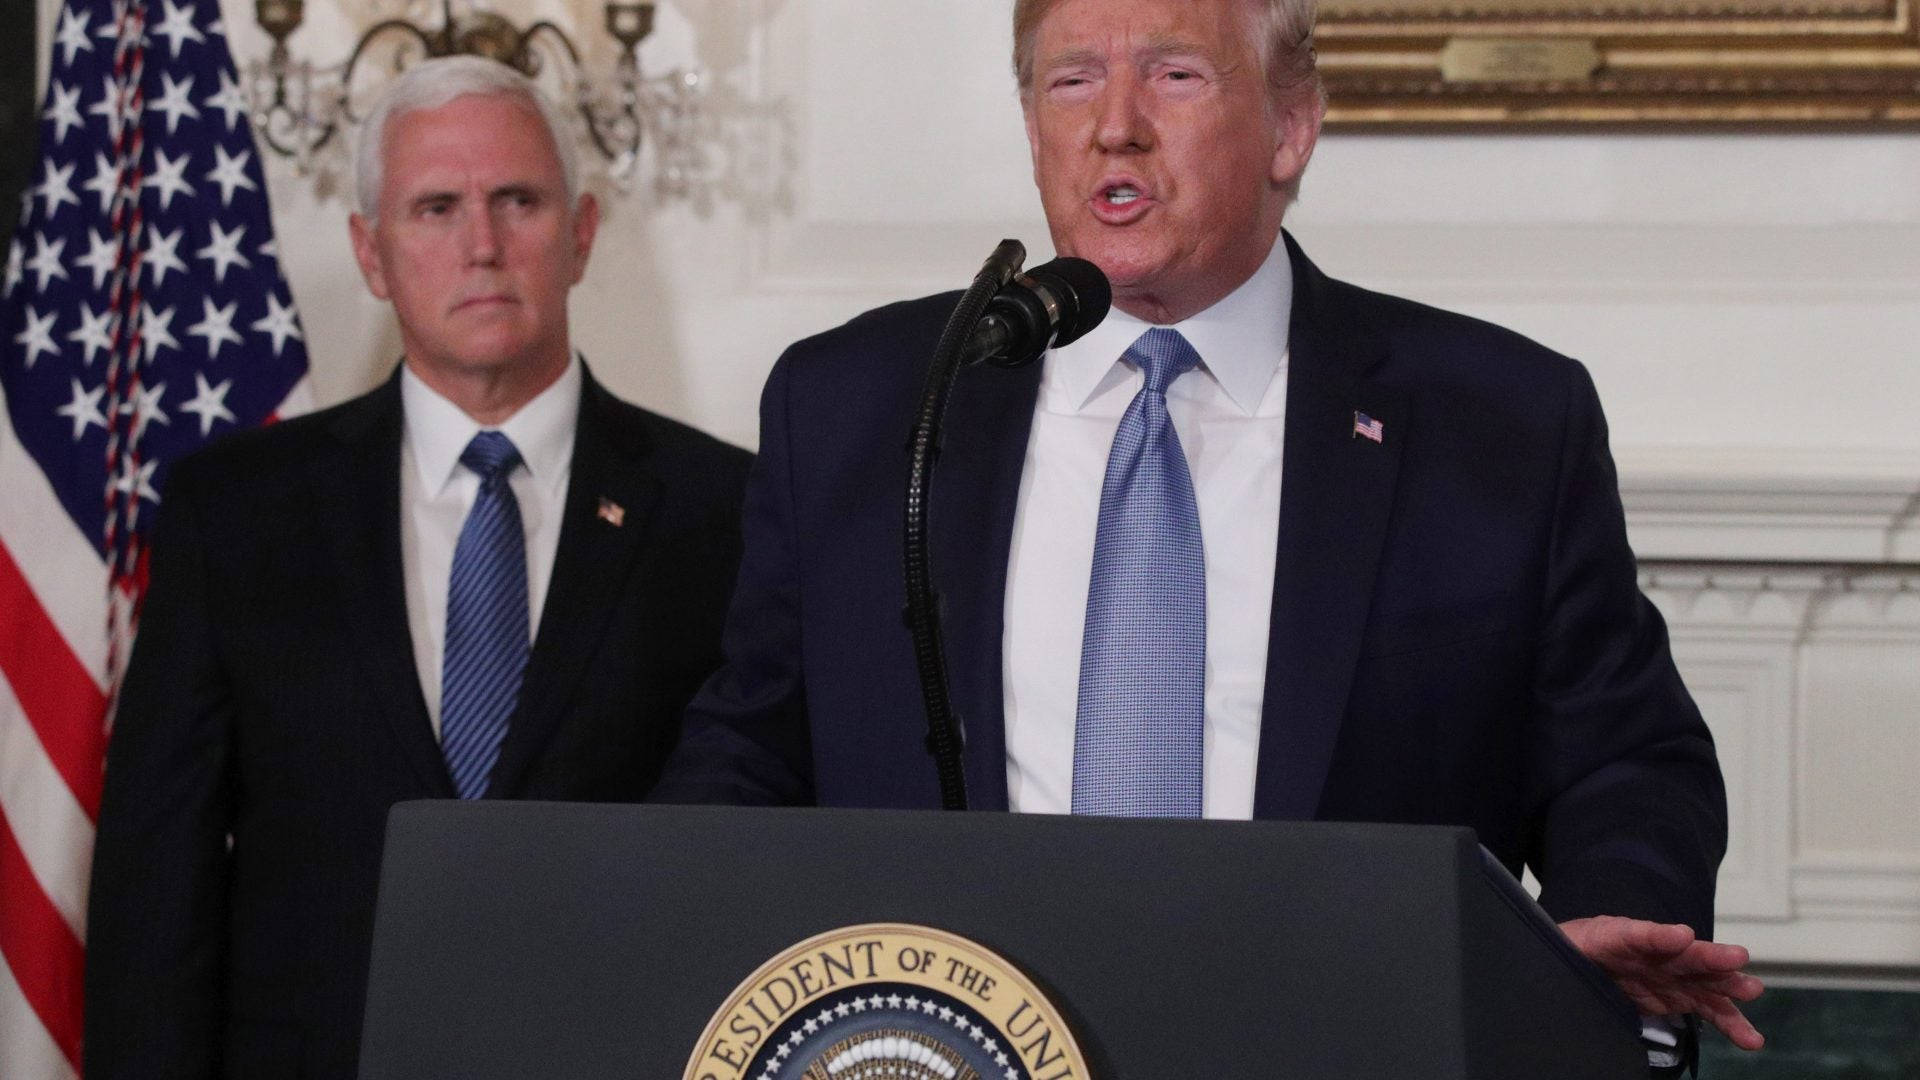 Donald Trump Condemns 'White Supremacy' During First Remarks Addressing El Paso, Dayton Mass Shootings